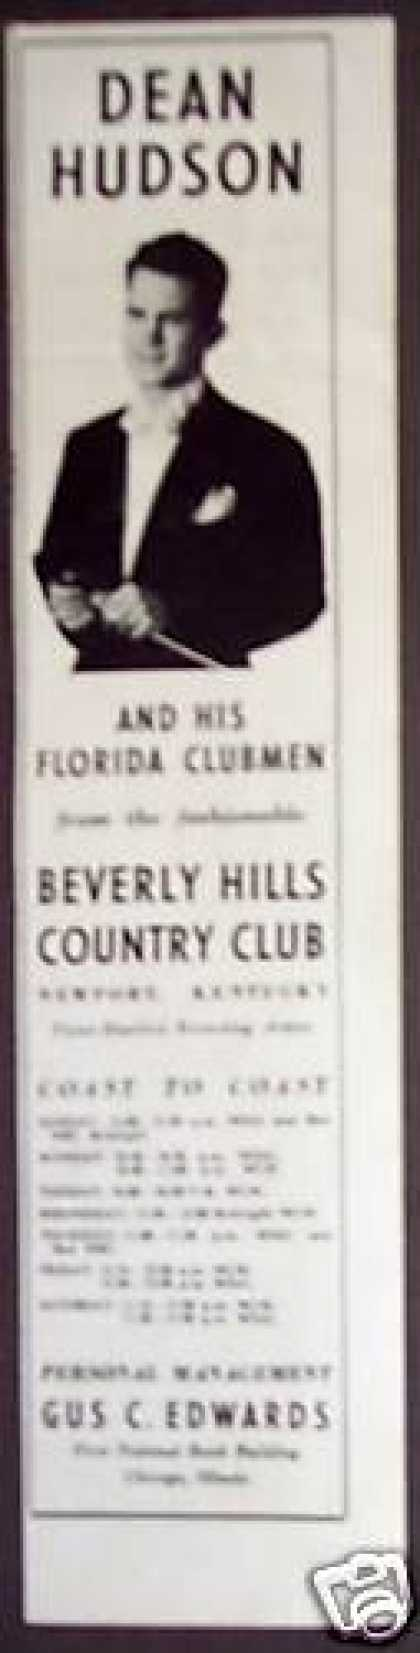 Dean Hudson and His Florida Clubmen Music Promo (1938)